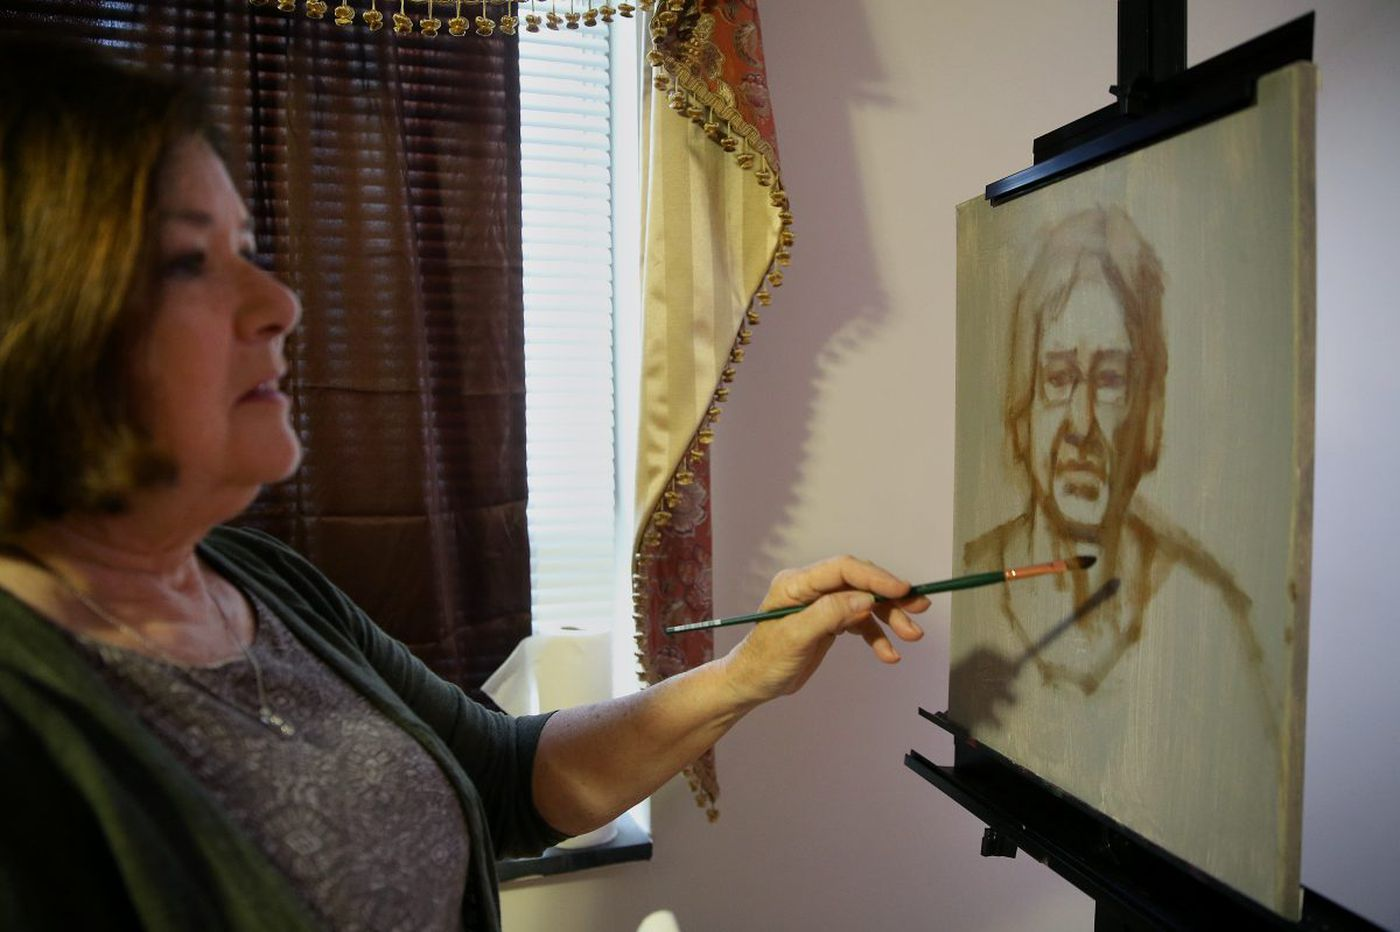 Painting portraits, she draws the life stories of South Jersey seniors | Kevin Riordan